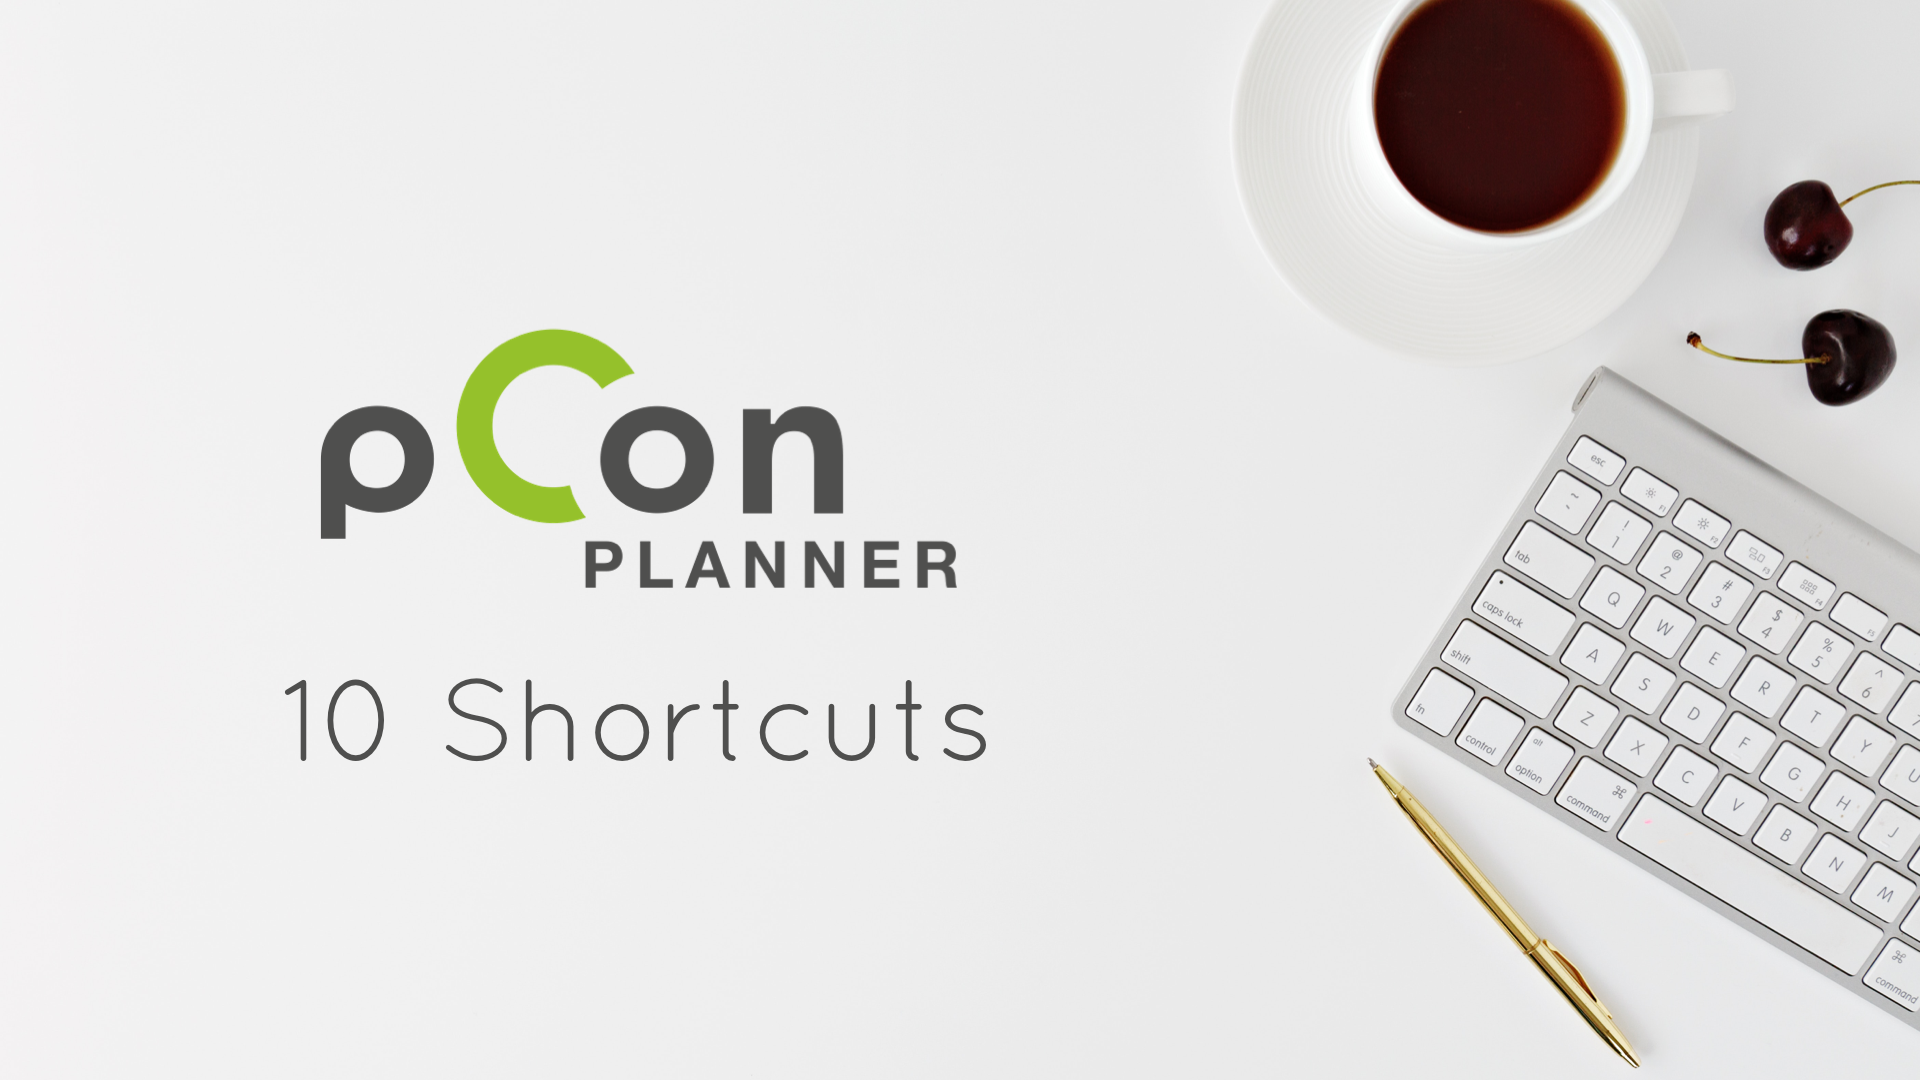 pCon.planner: 10 shortcuts for a boost in productivity shortcuts Productivity pCon.planner